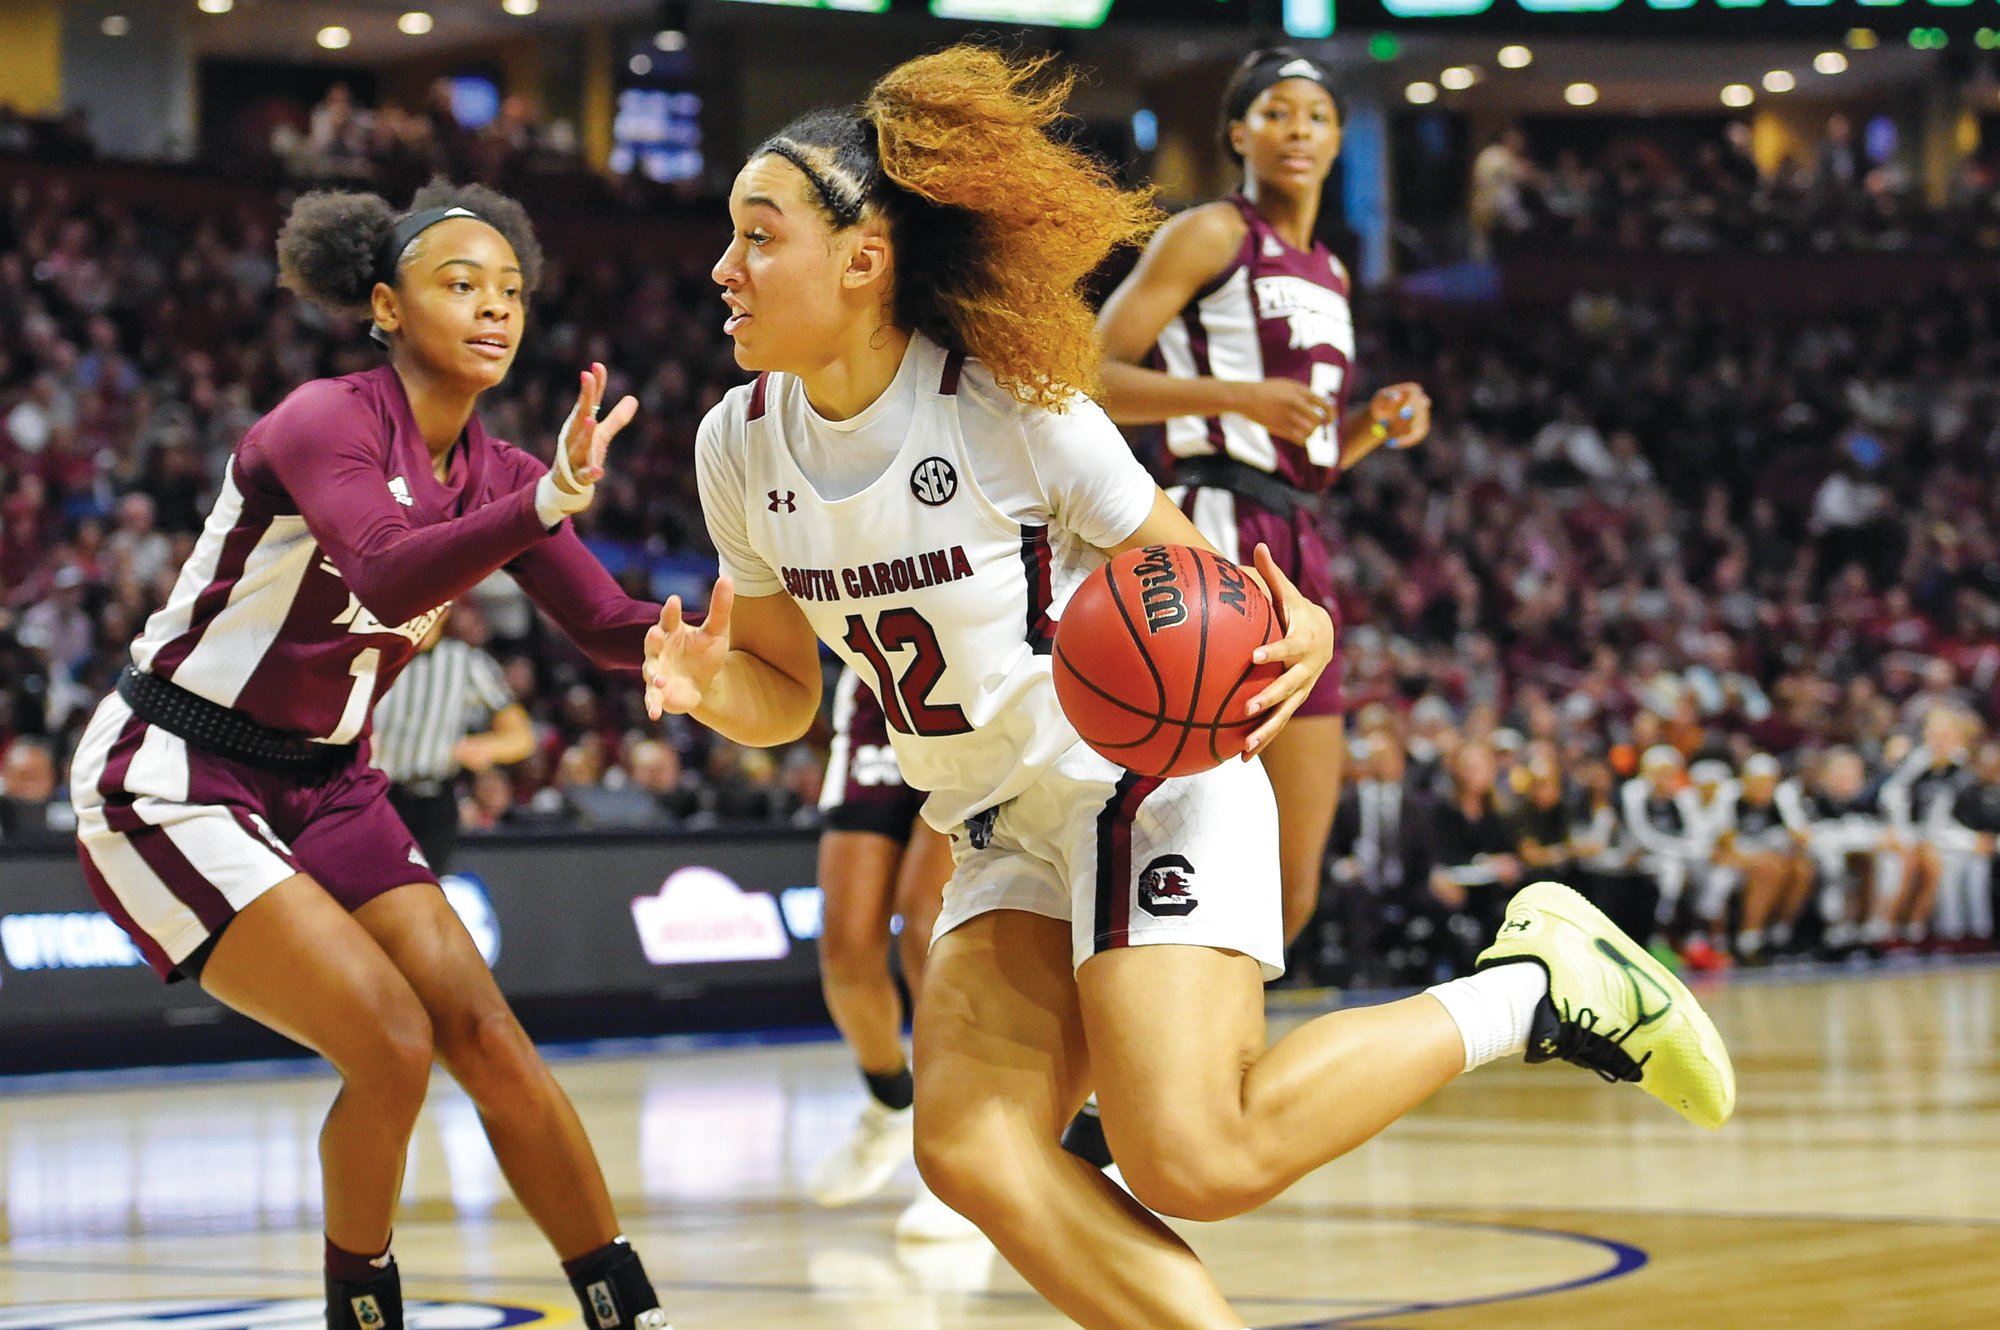 South Carolina's Brea Beal (12) drives while defended by Mississippi State's Myah Taylor (1) during the Gamecocks' 76-62 win in the SEC championship on Sunday in Greenville.